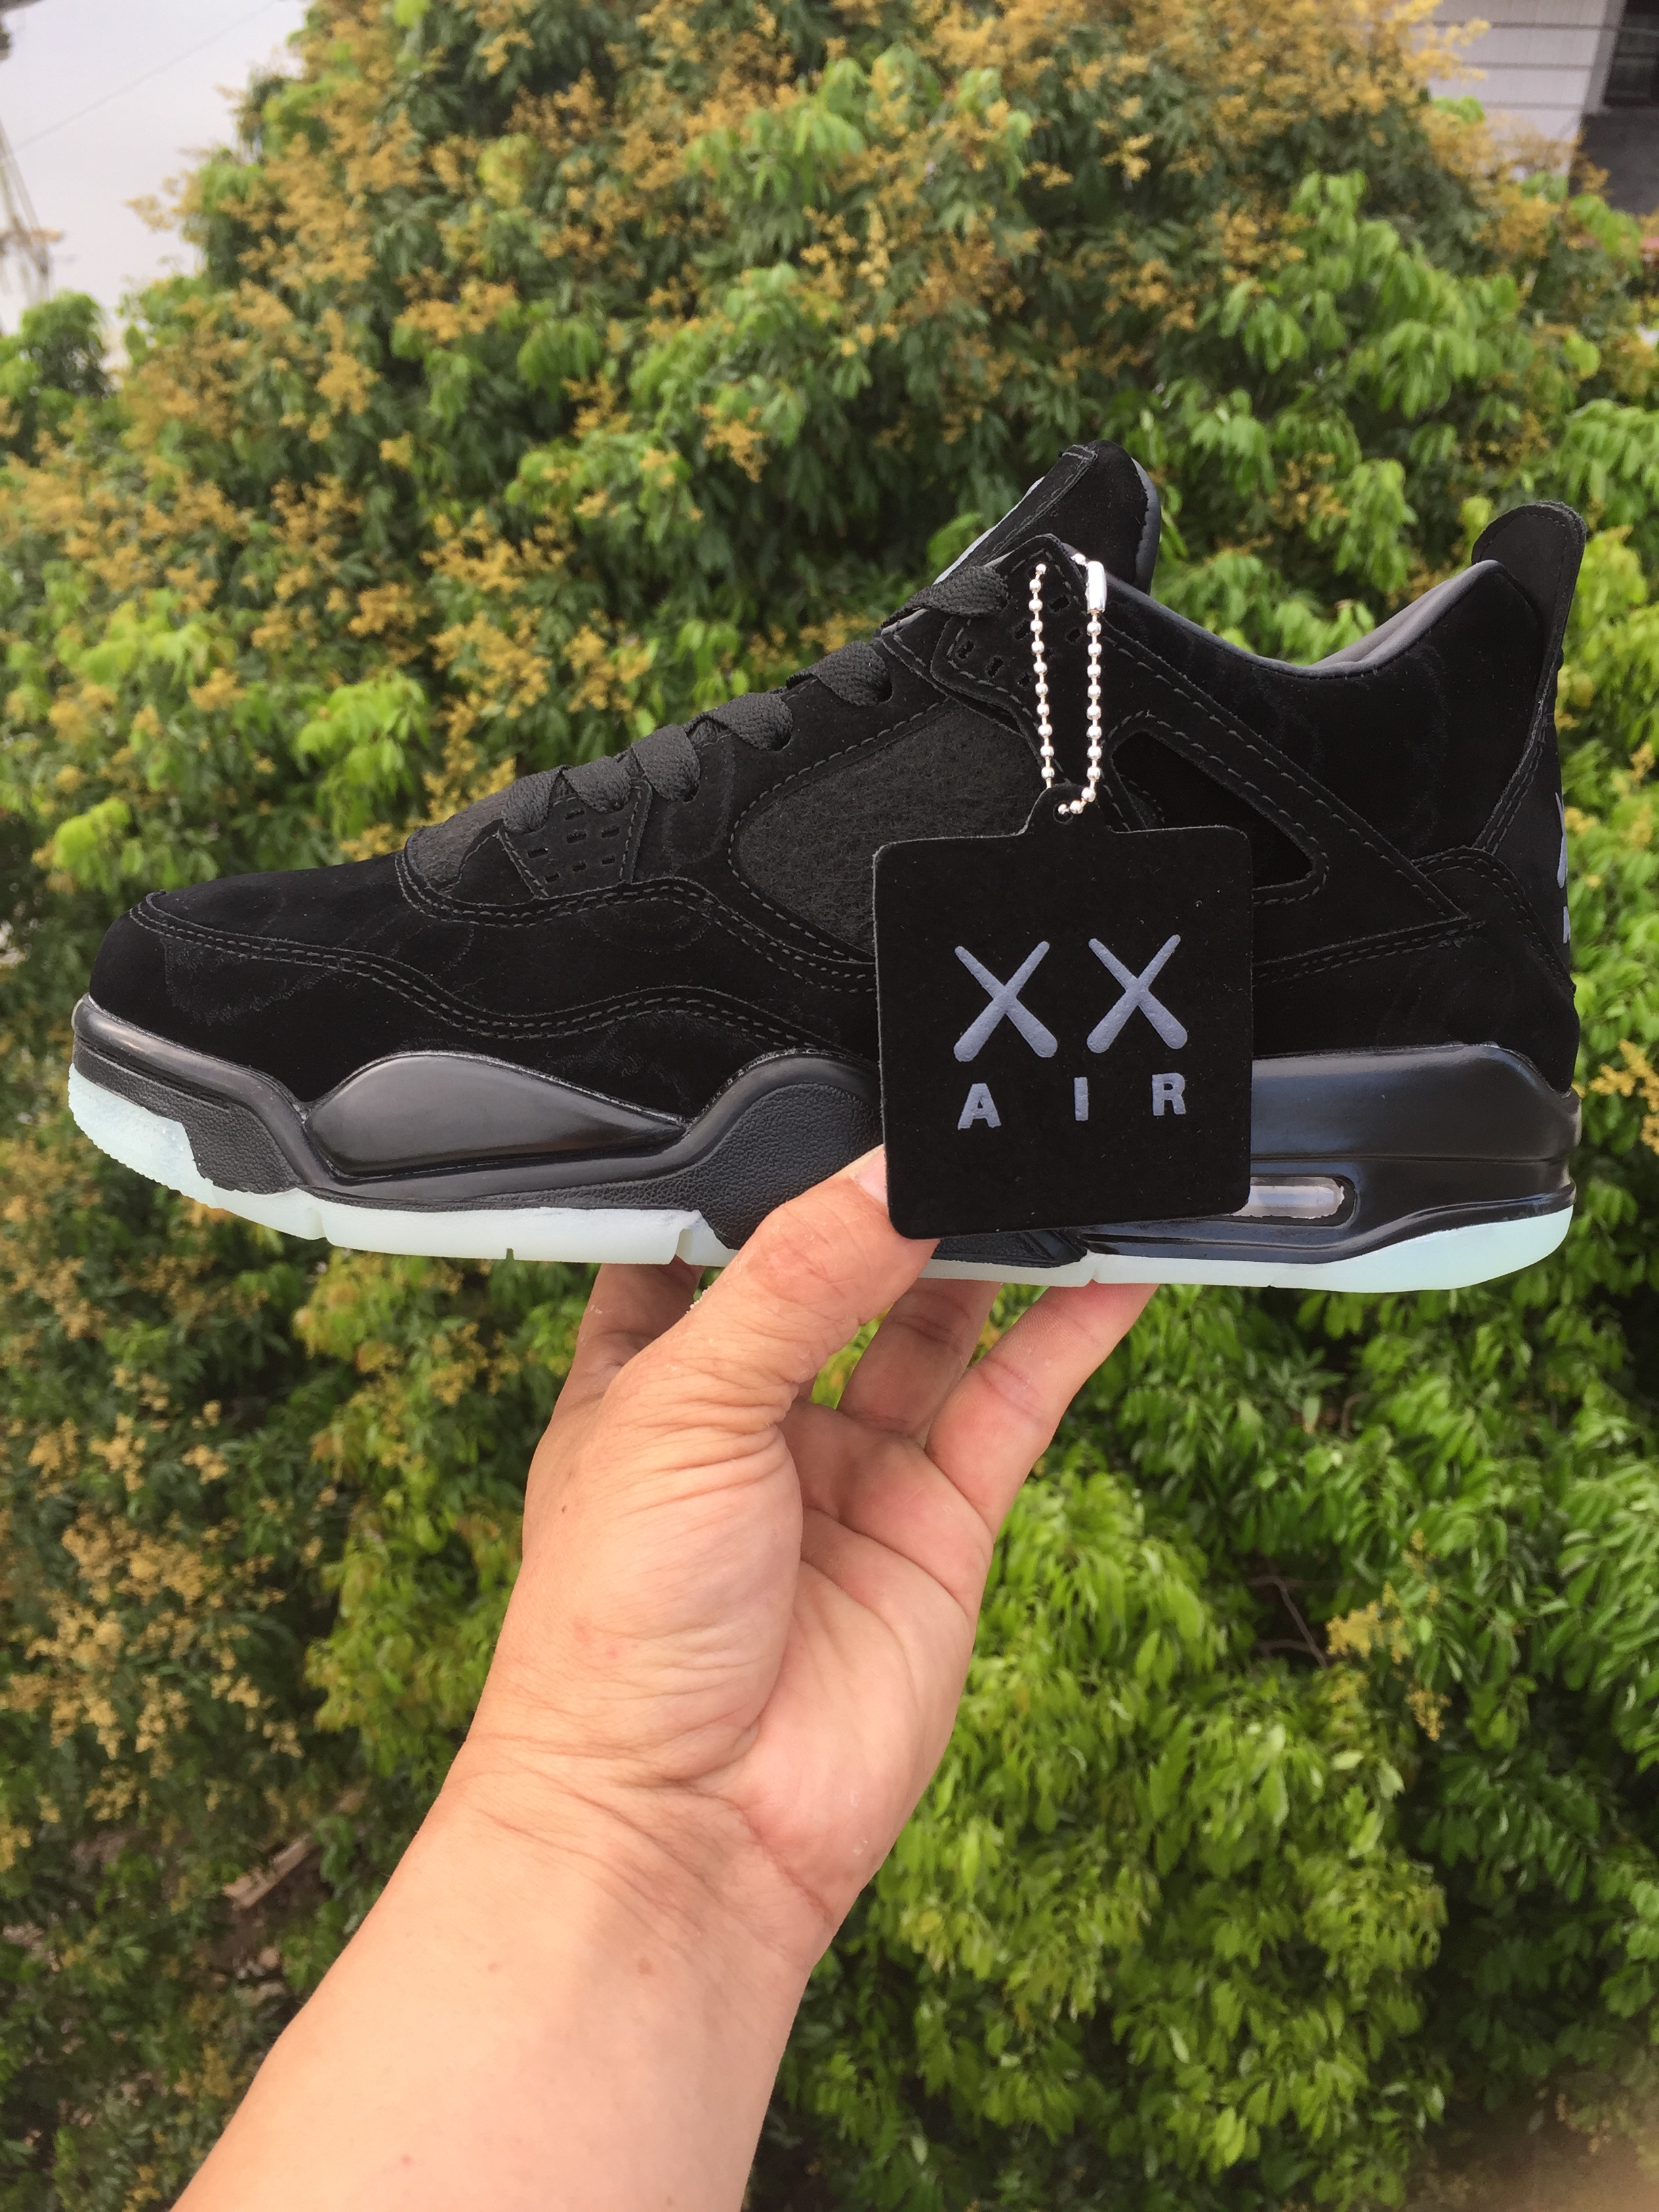 CHeap KAWS X Air Jordans 4 Black Shoes